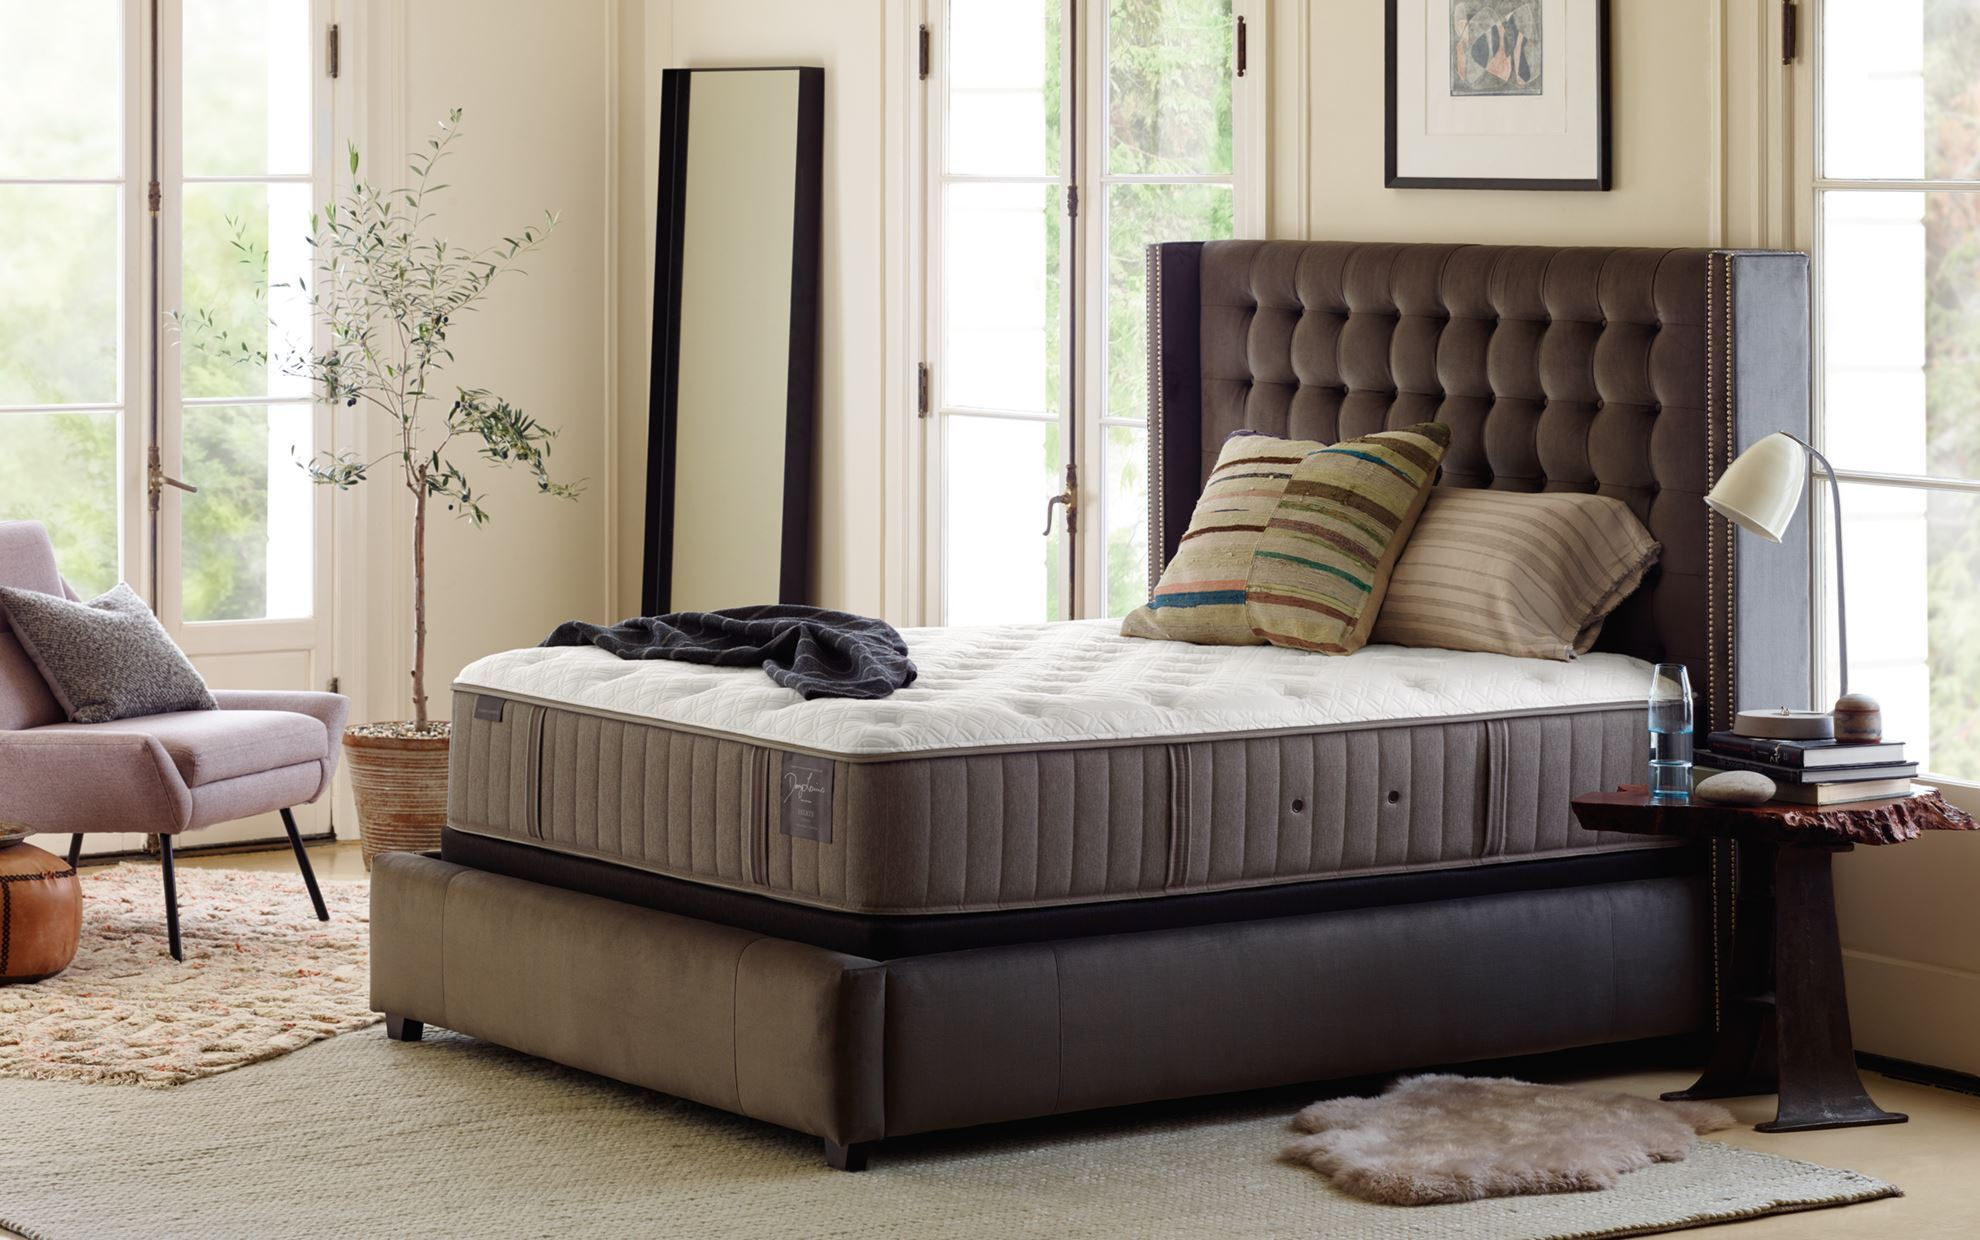 Picture of Stearns & Foster Scarborough Plush Pillowtop Queen Mattress Only